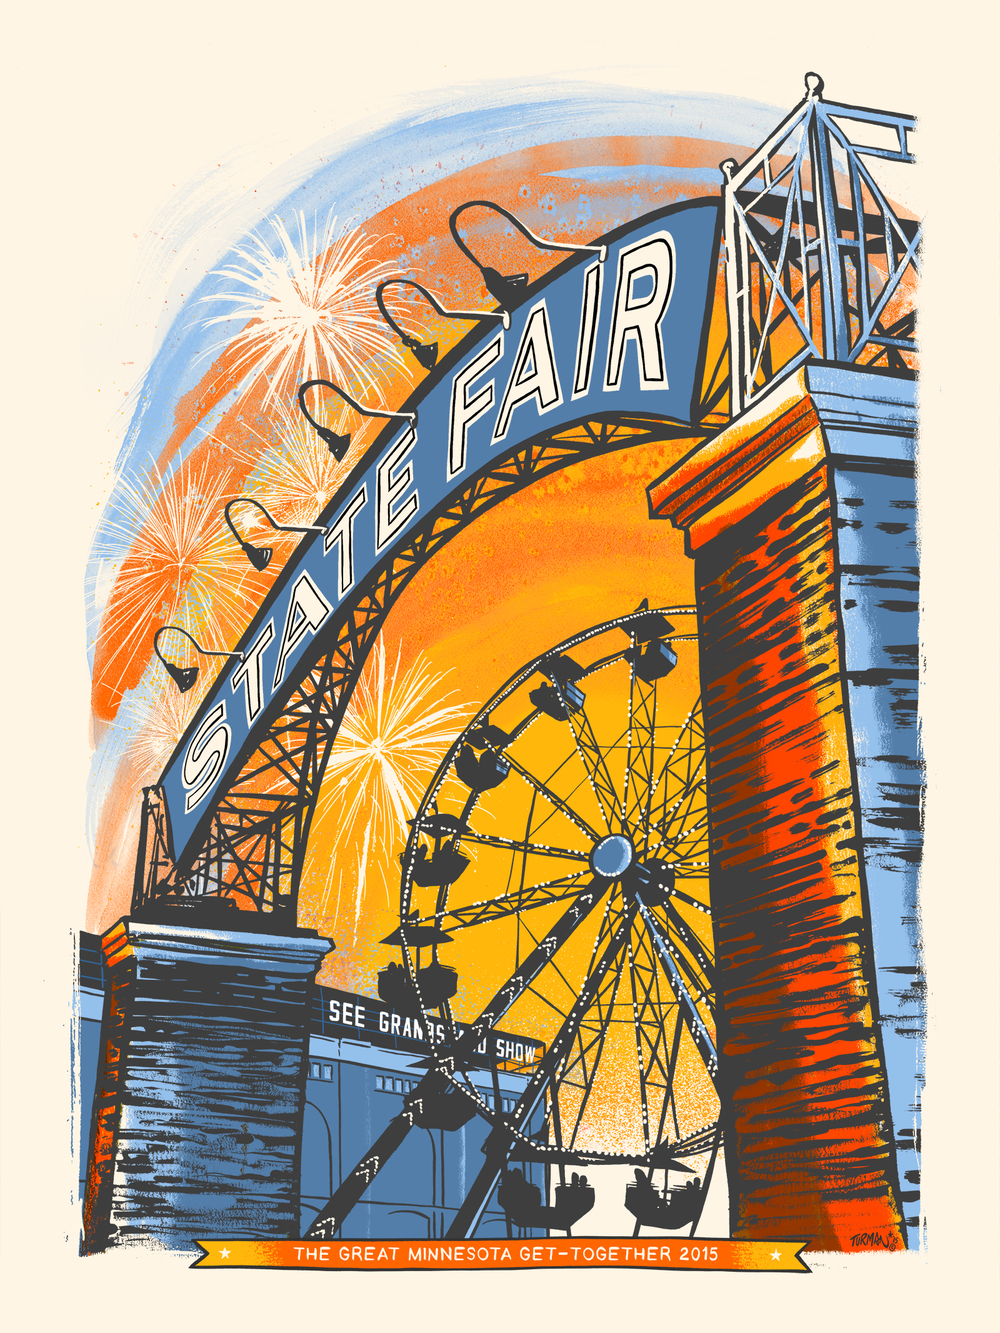 Minnesota State Fair Commemorative Art 2105 - Turman